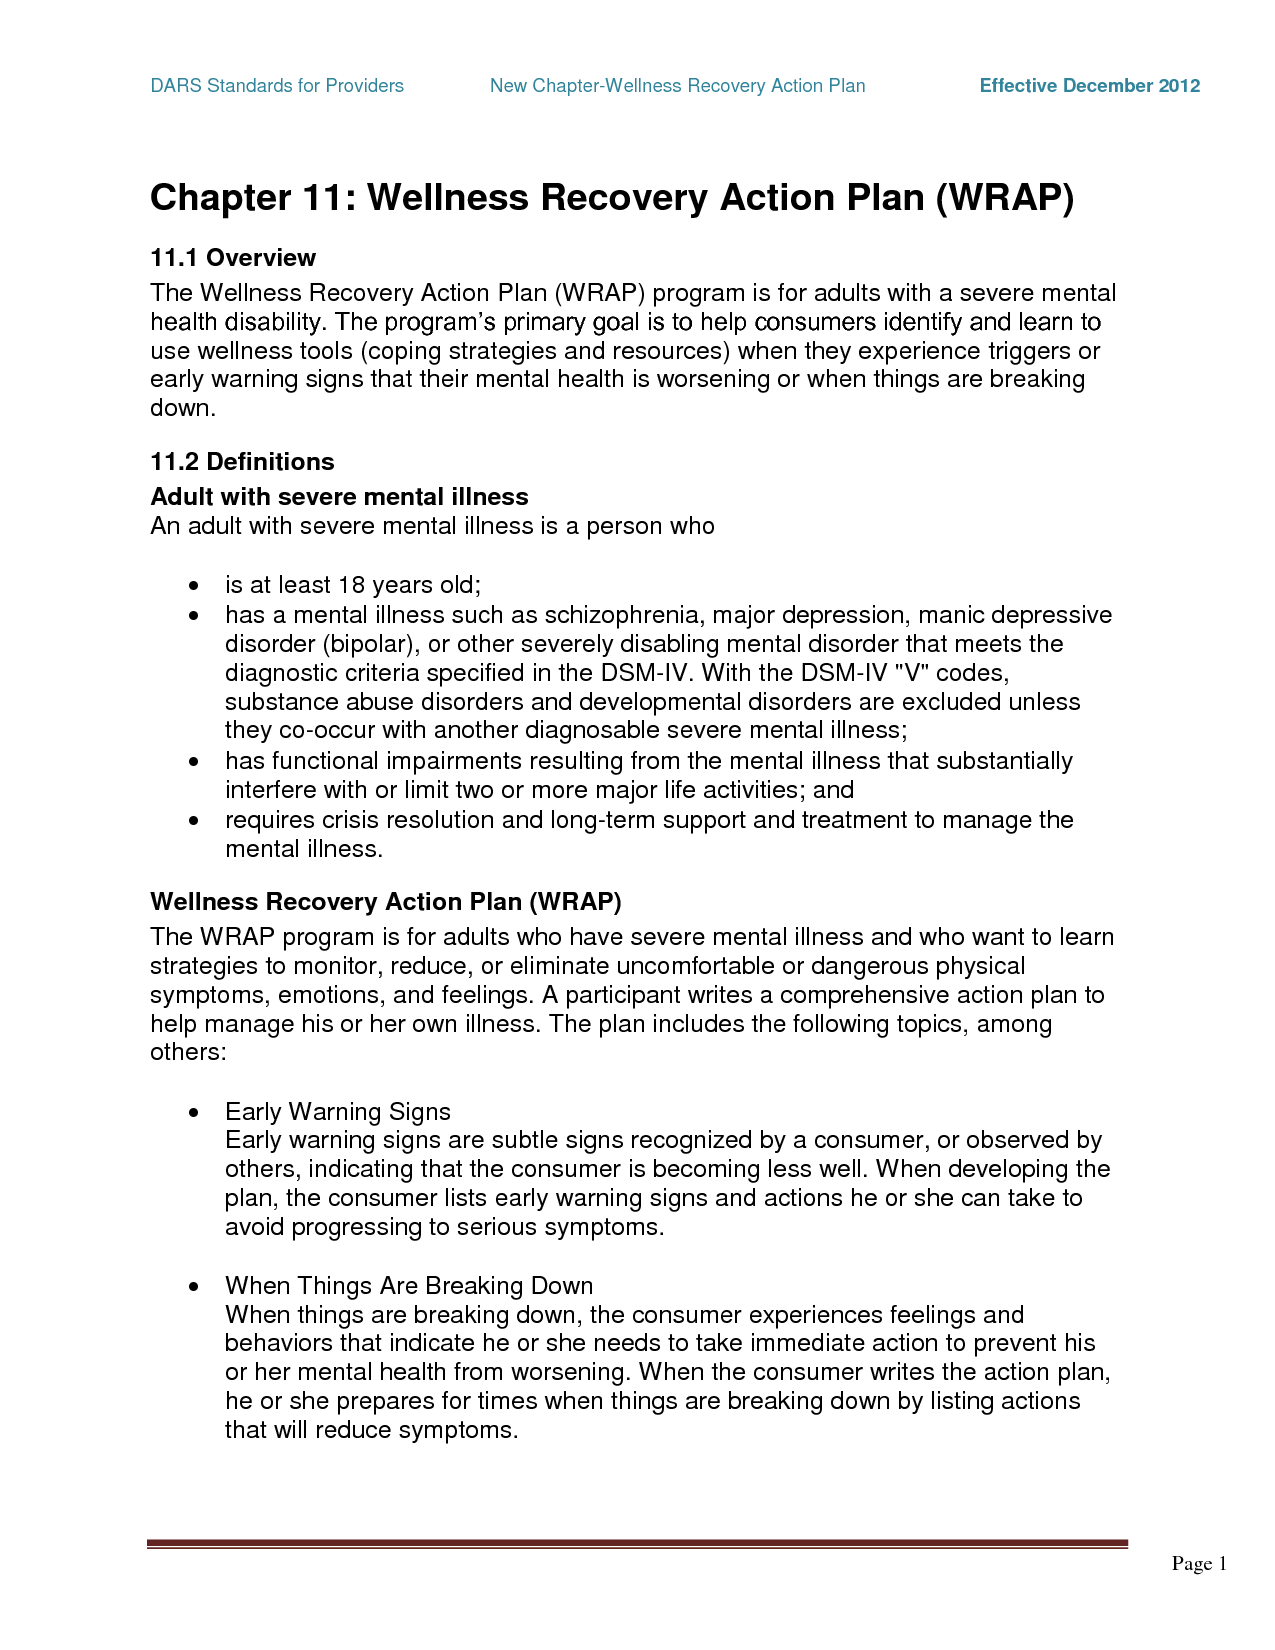 Worksheets Wellness Recovery Action Plan Worksheets wrap mental health chapter 11 wellness recovery action plan wrap